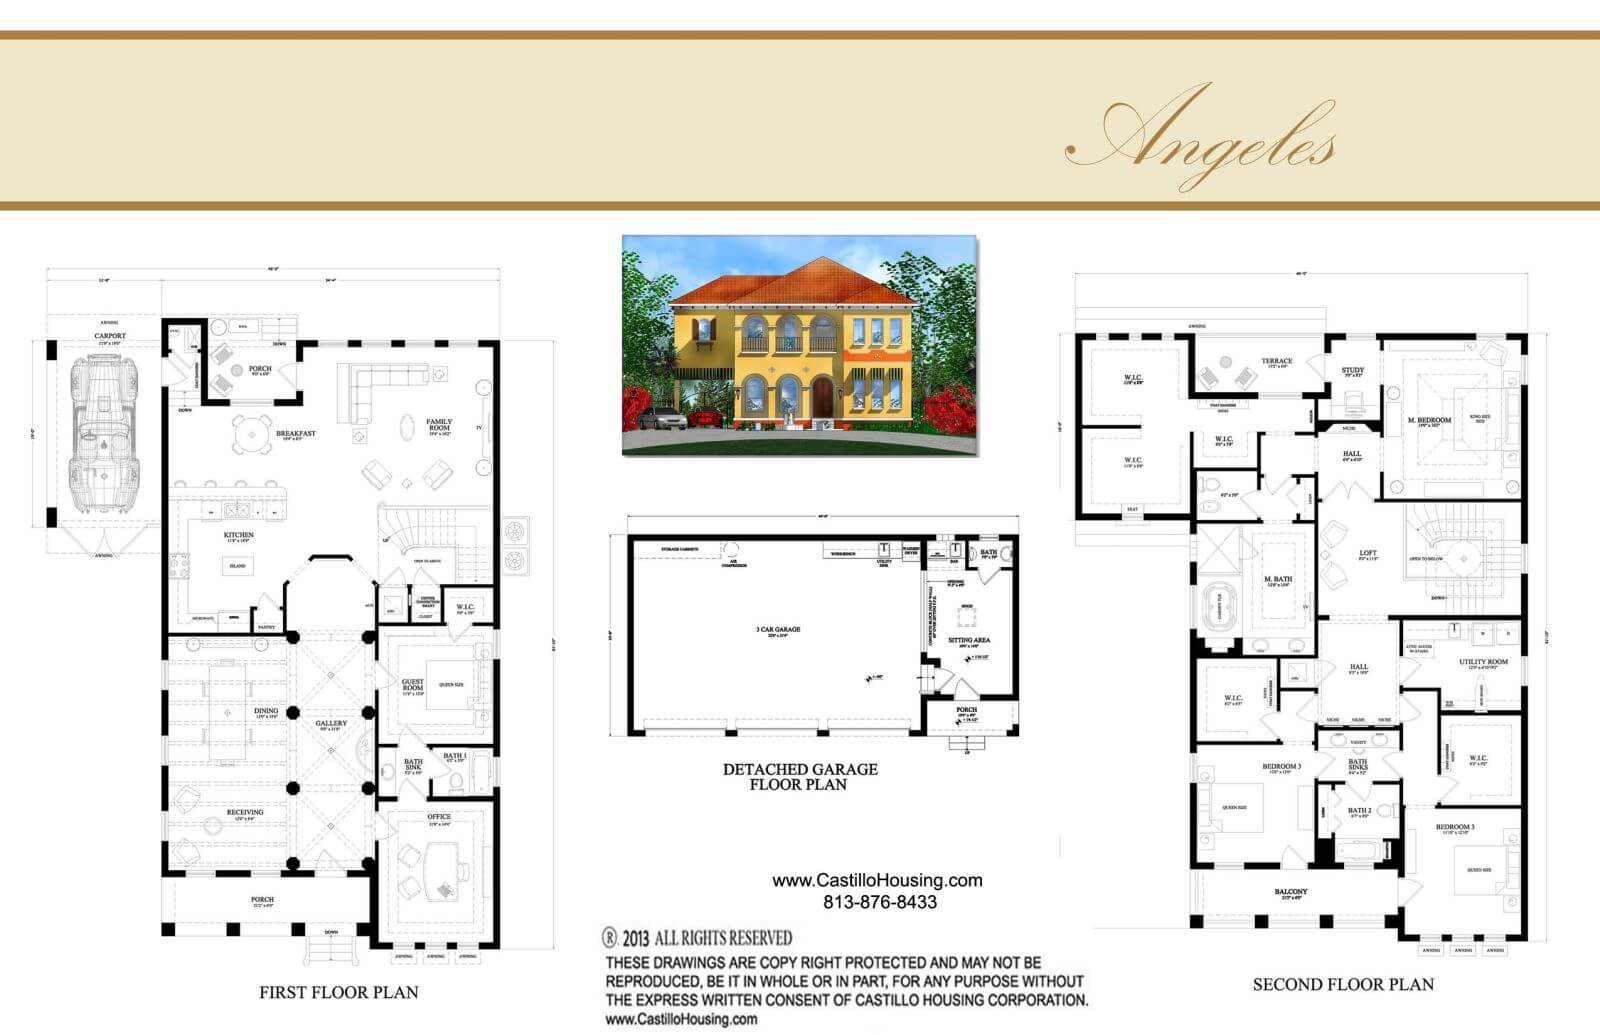 Floor Plans,3,501 SQ FT TO 4,000 SQ FT,1091